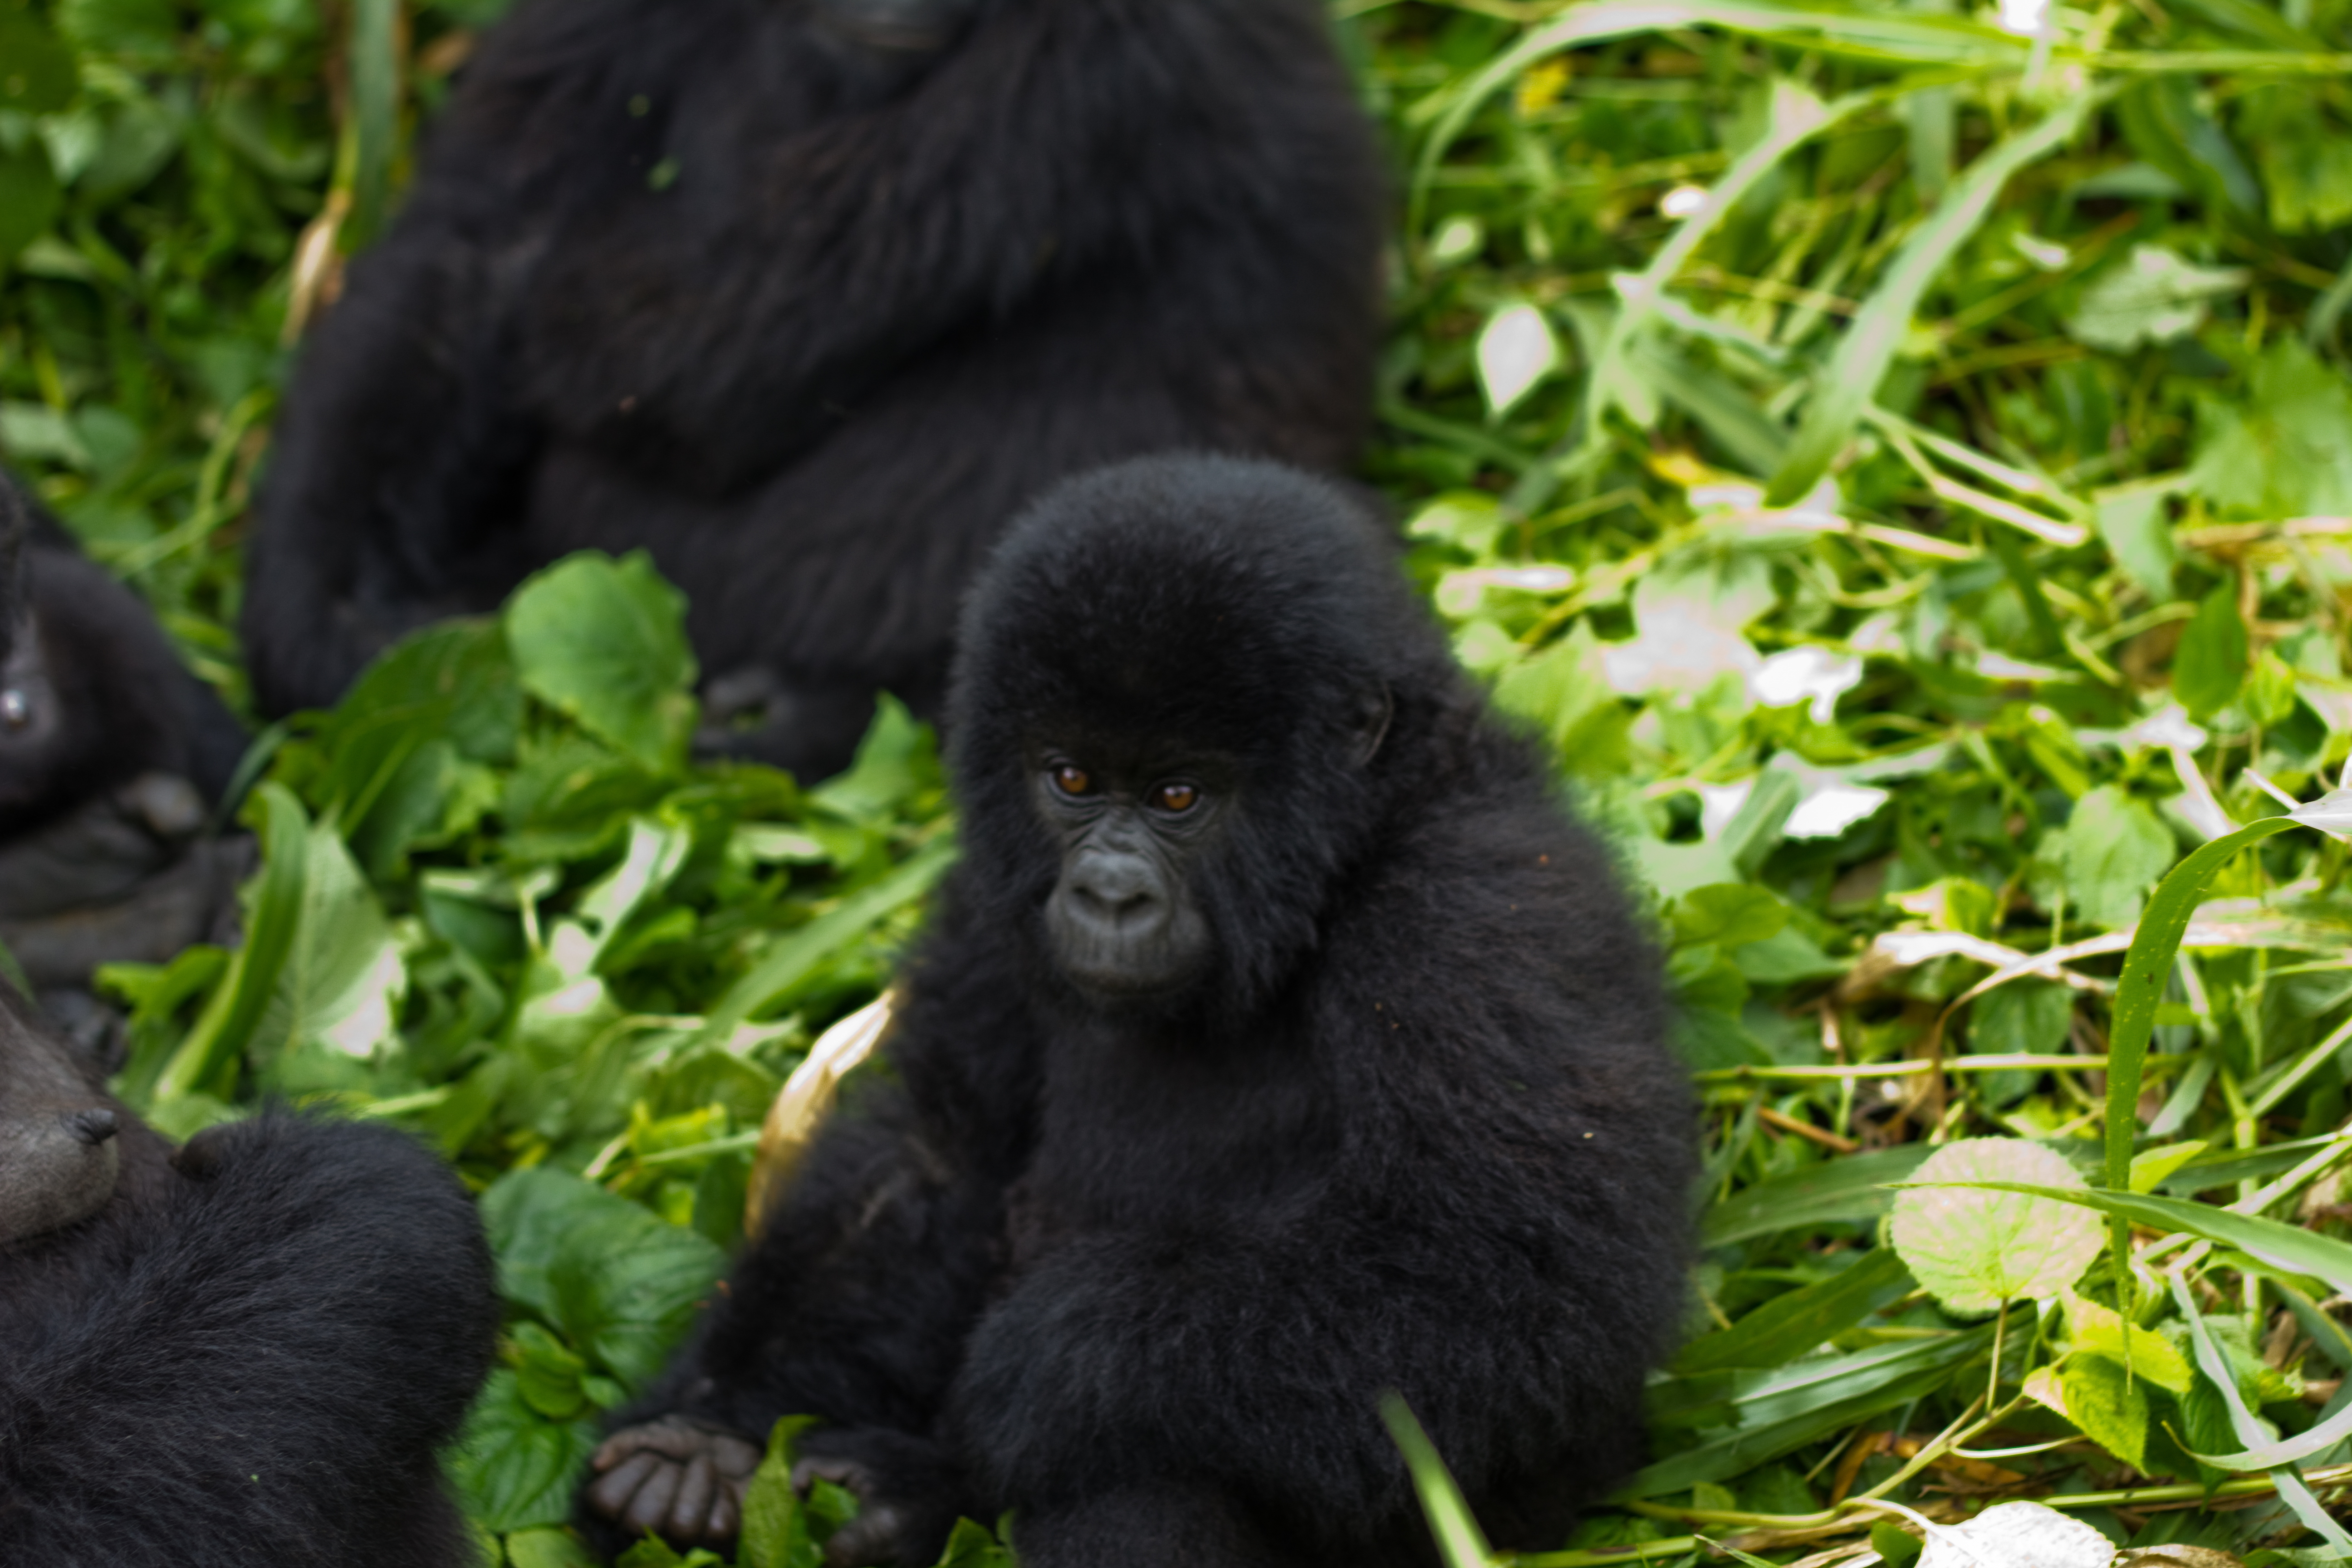 mountain gorillas Experience africa's mountain gorillas on an adventure through rwanda visit rwanda, africa's home to some of the last remaining mountain gorillas and a place where you will be warmly welcomed by smiling locals rwanda has bravely risen from a tragic past and stands proudly as a representation of.